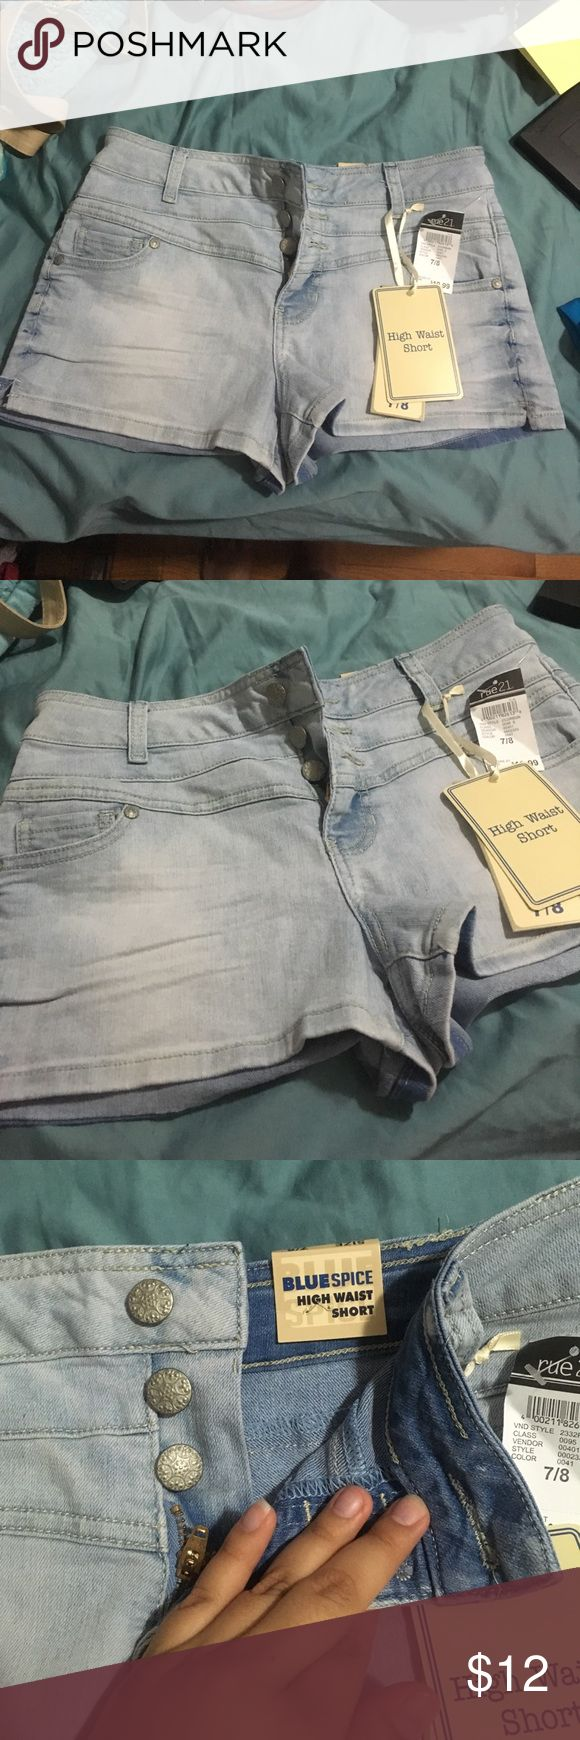 Rue 21: High Waist Short New with tags!! Size: 7/8 Rue 21 Shorts Jean Shorts